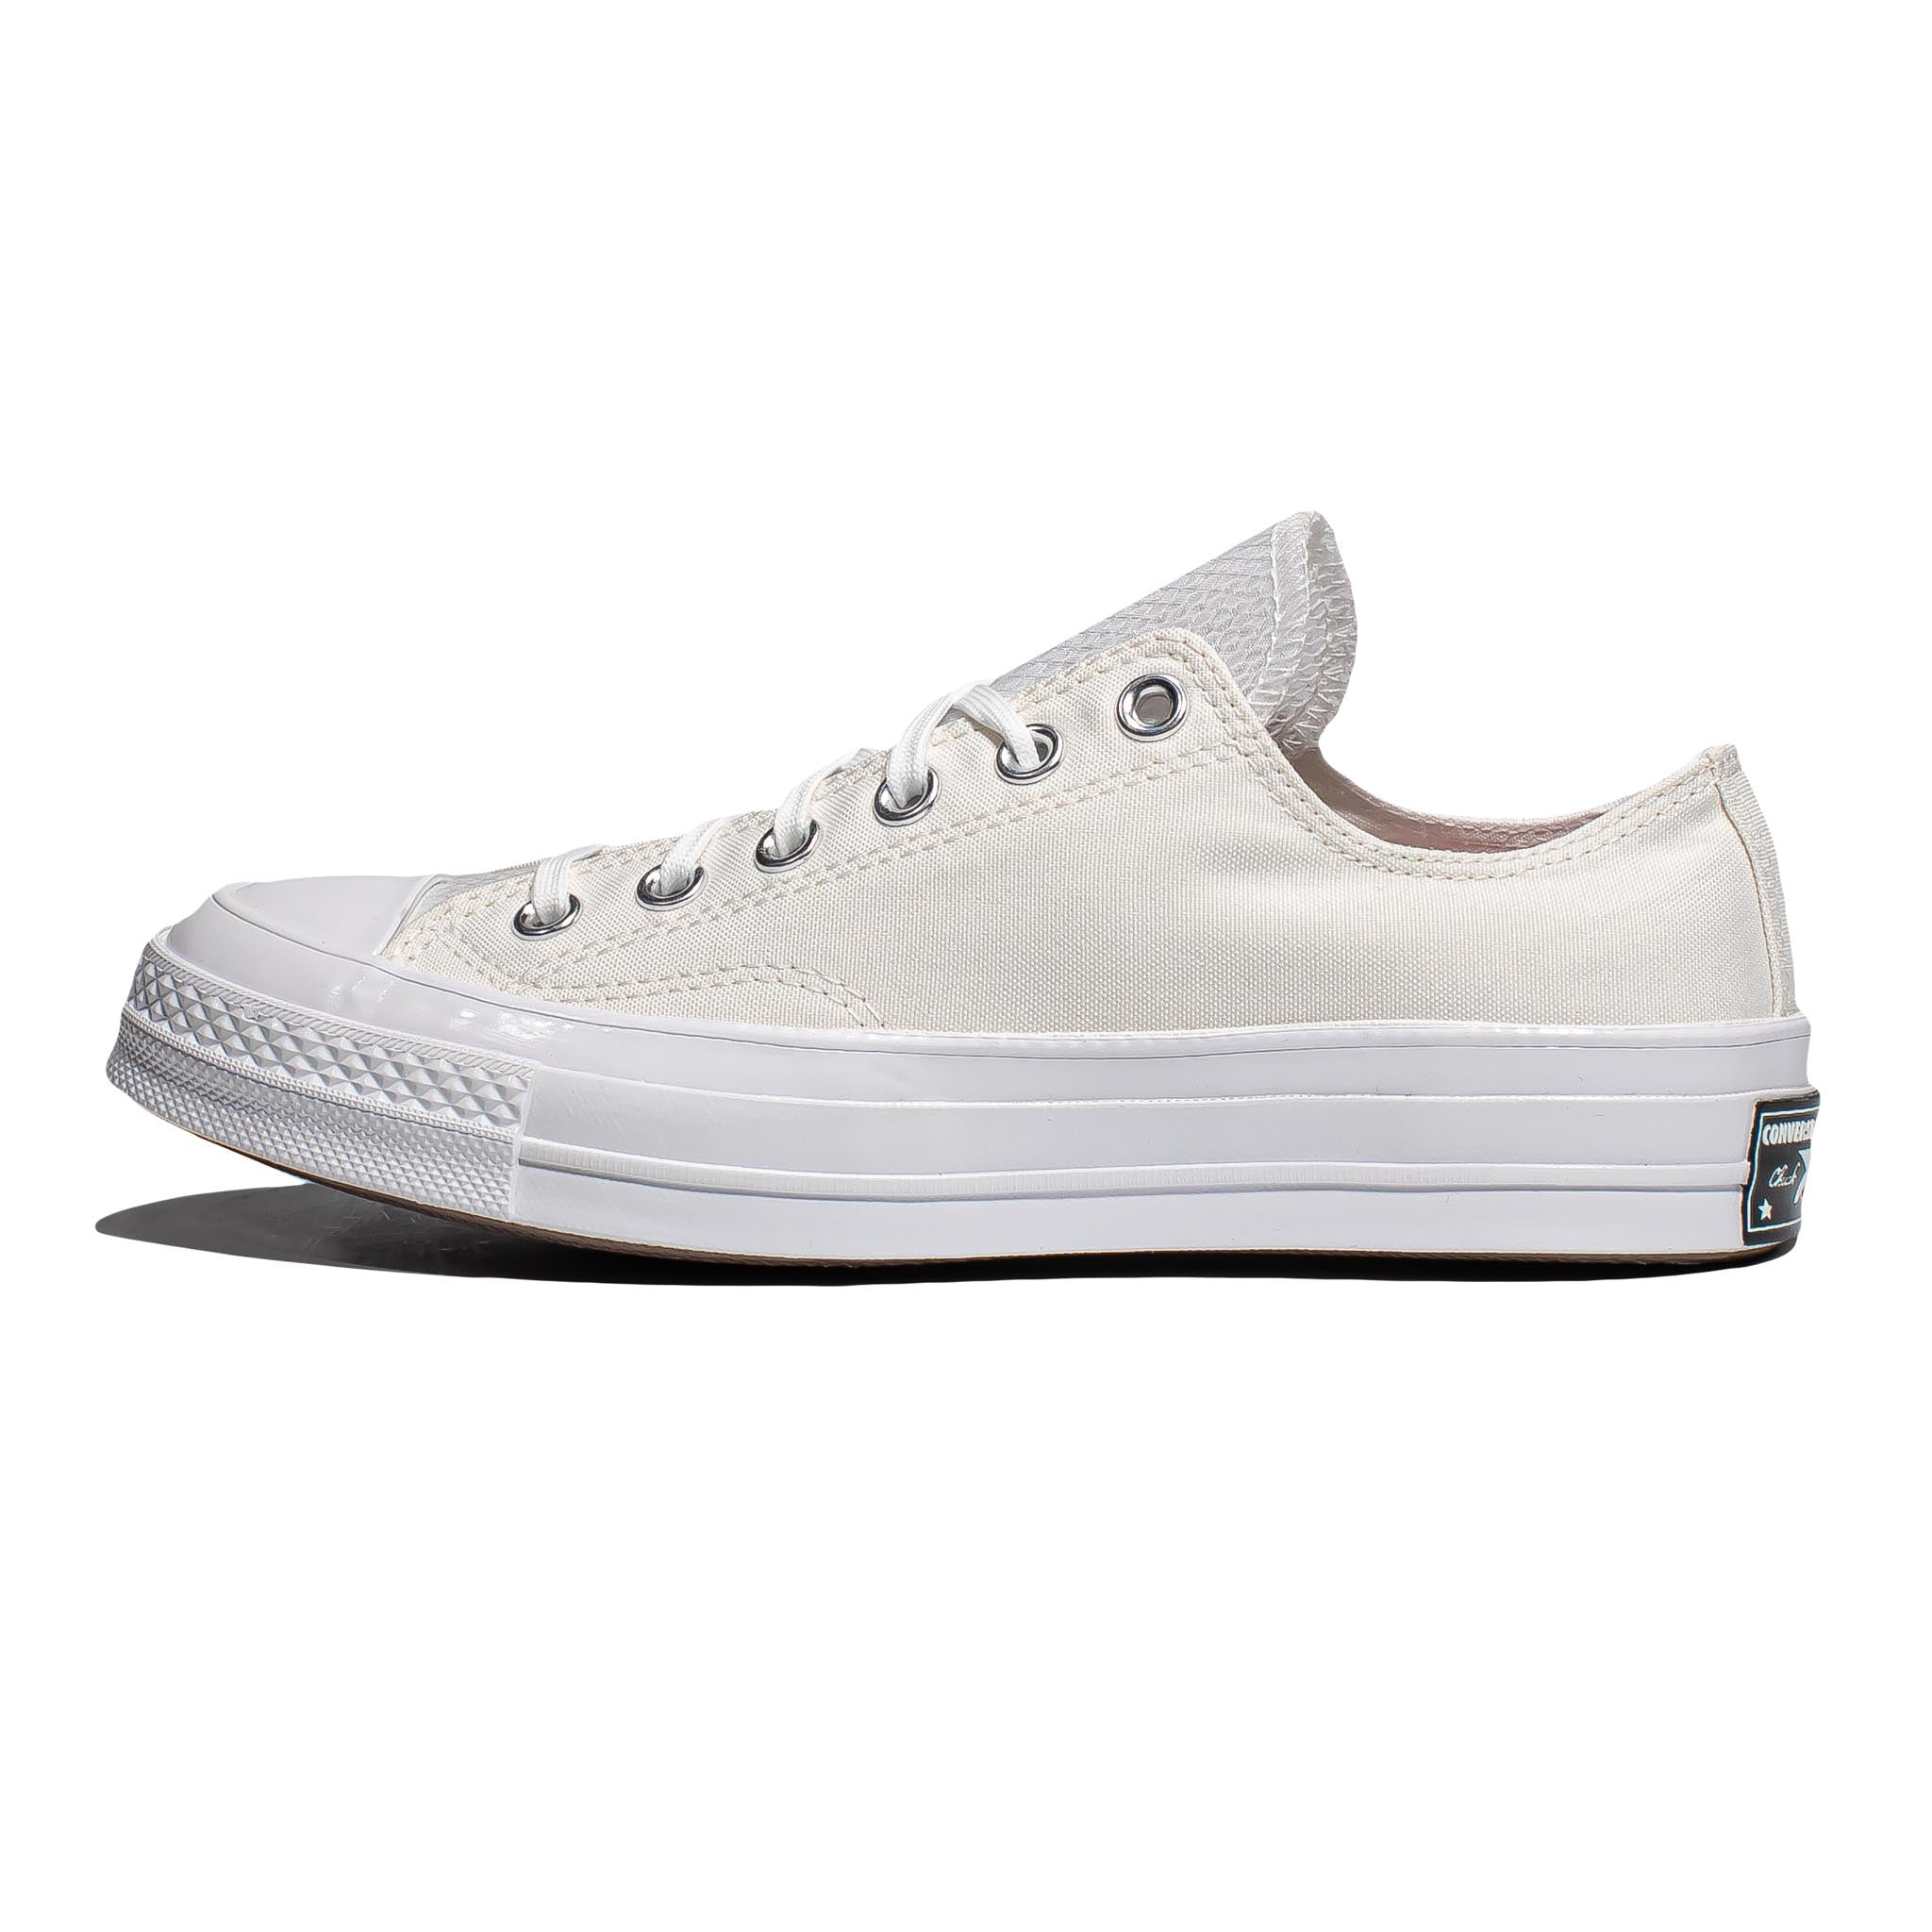 Converse Heat Chuck 70 Low Optical White